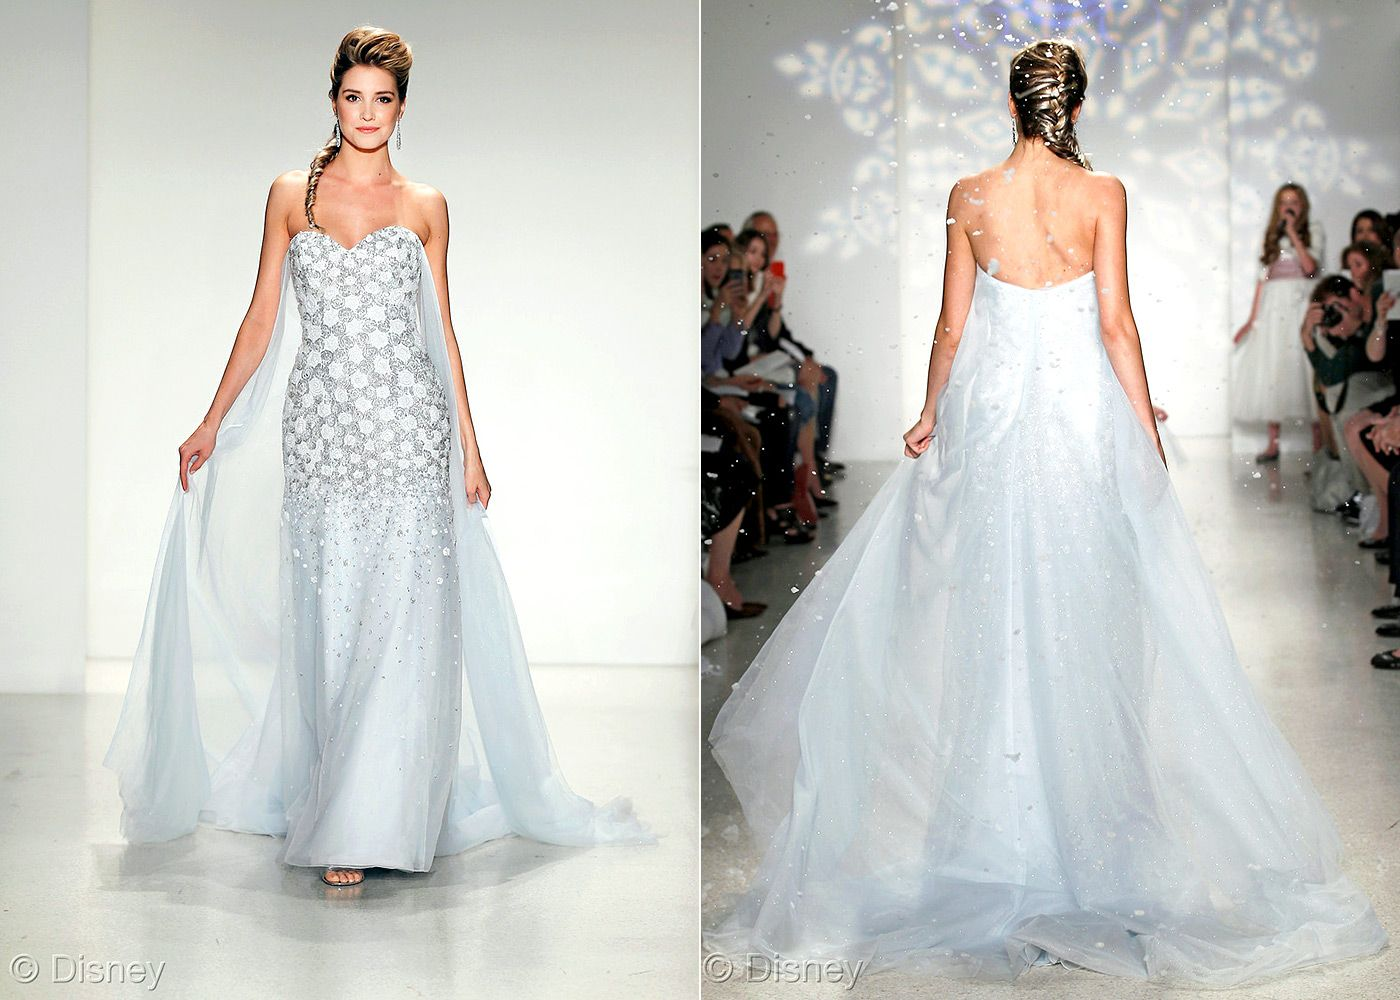 The dress from frozen - First Pictures Of The Frozen Wedding Dress From Disney